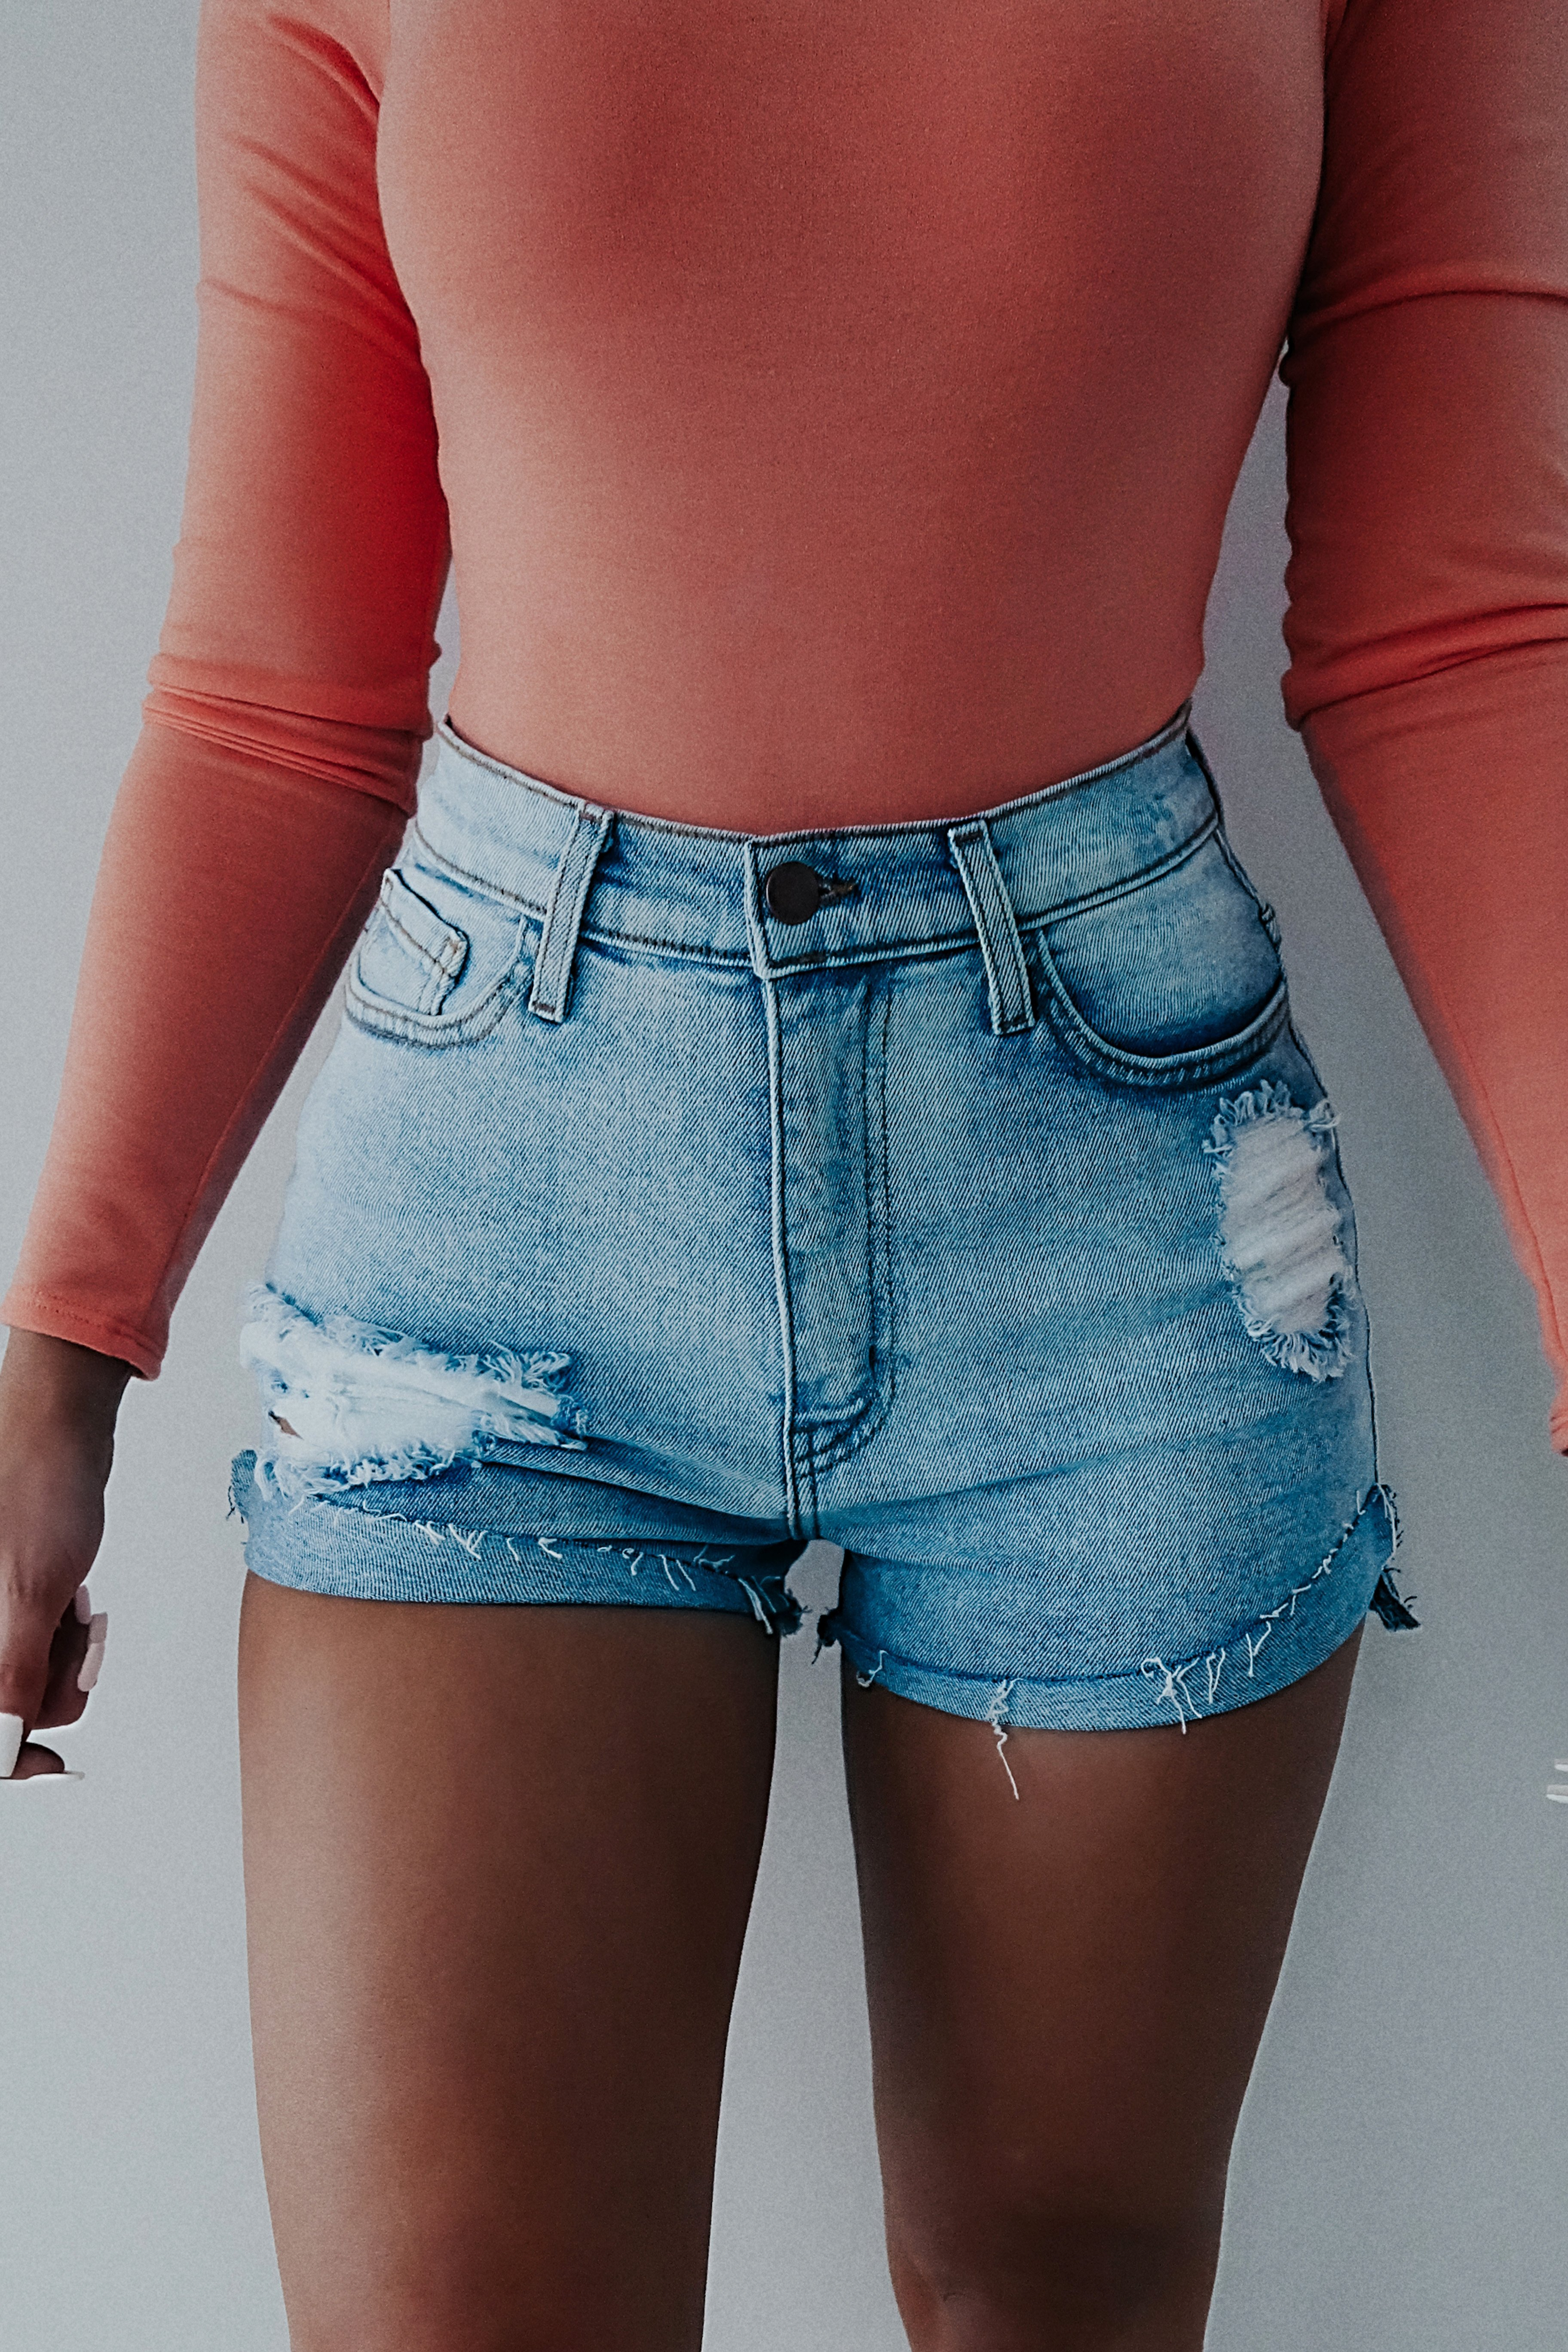 Image of REORDER: On Your Time Shorts: Denim